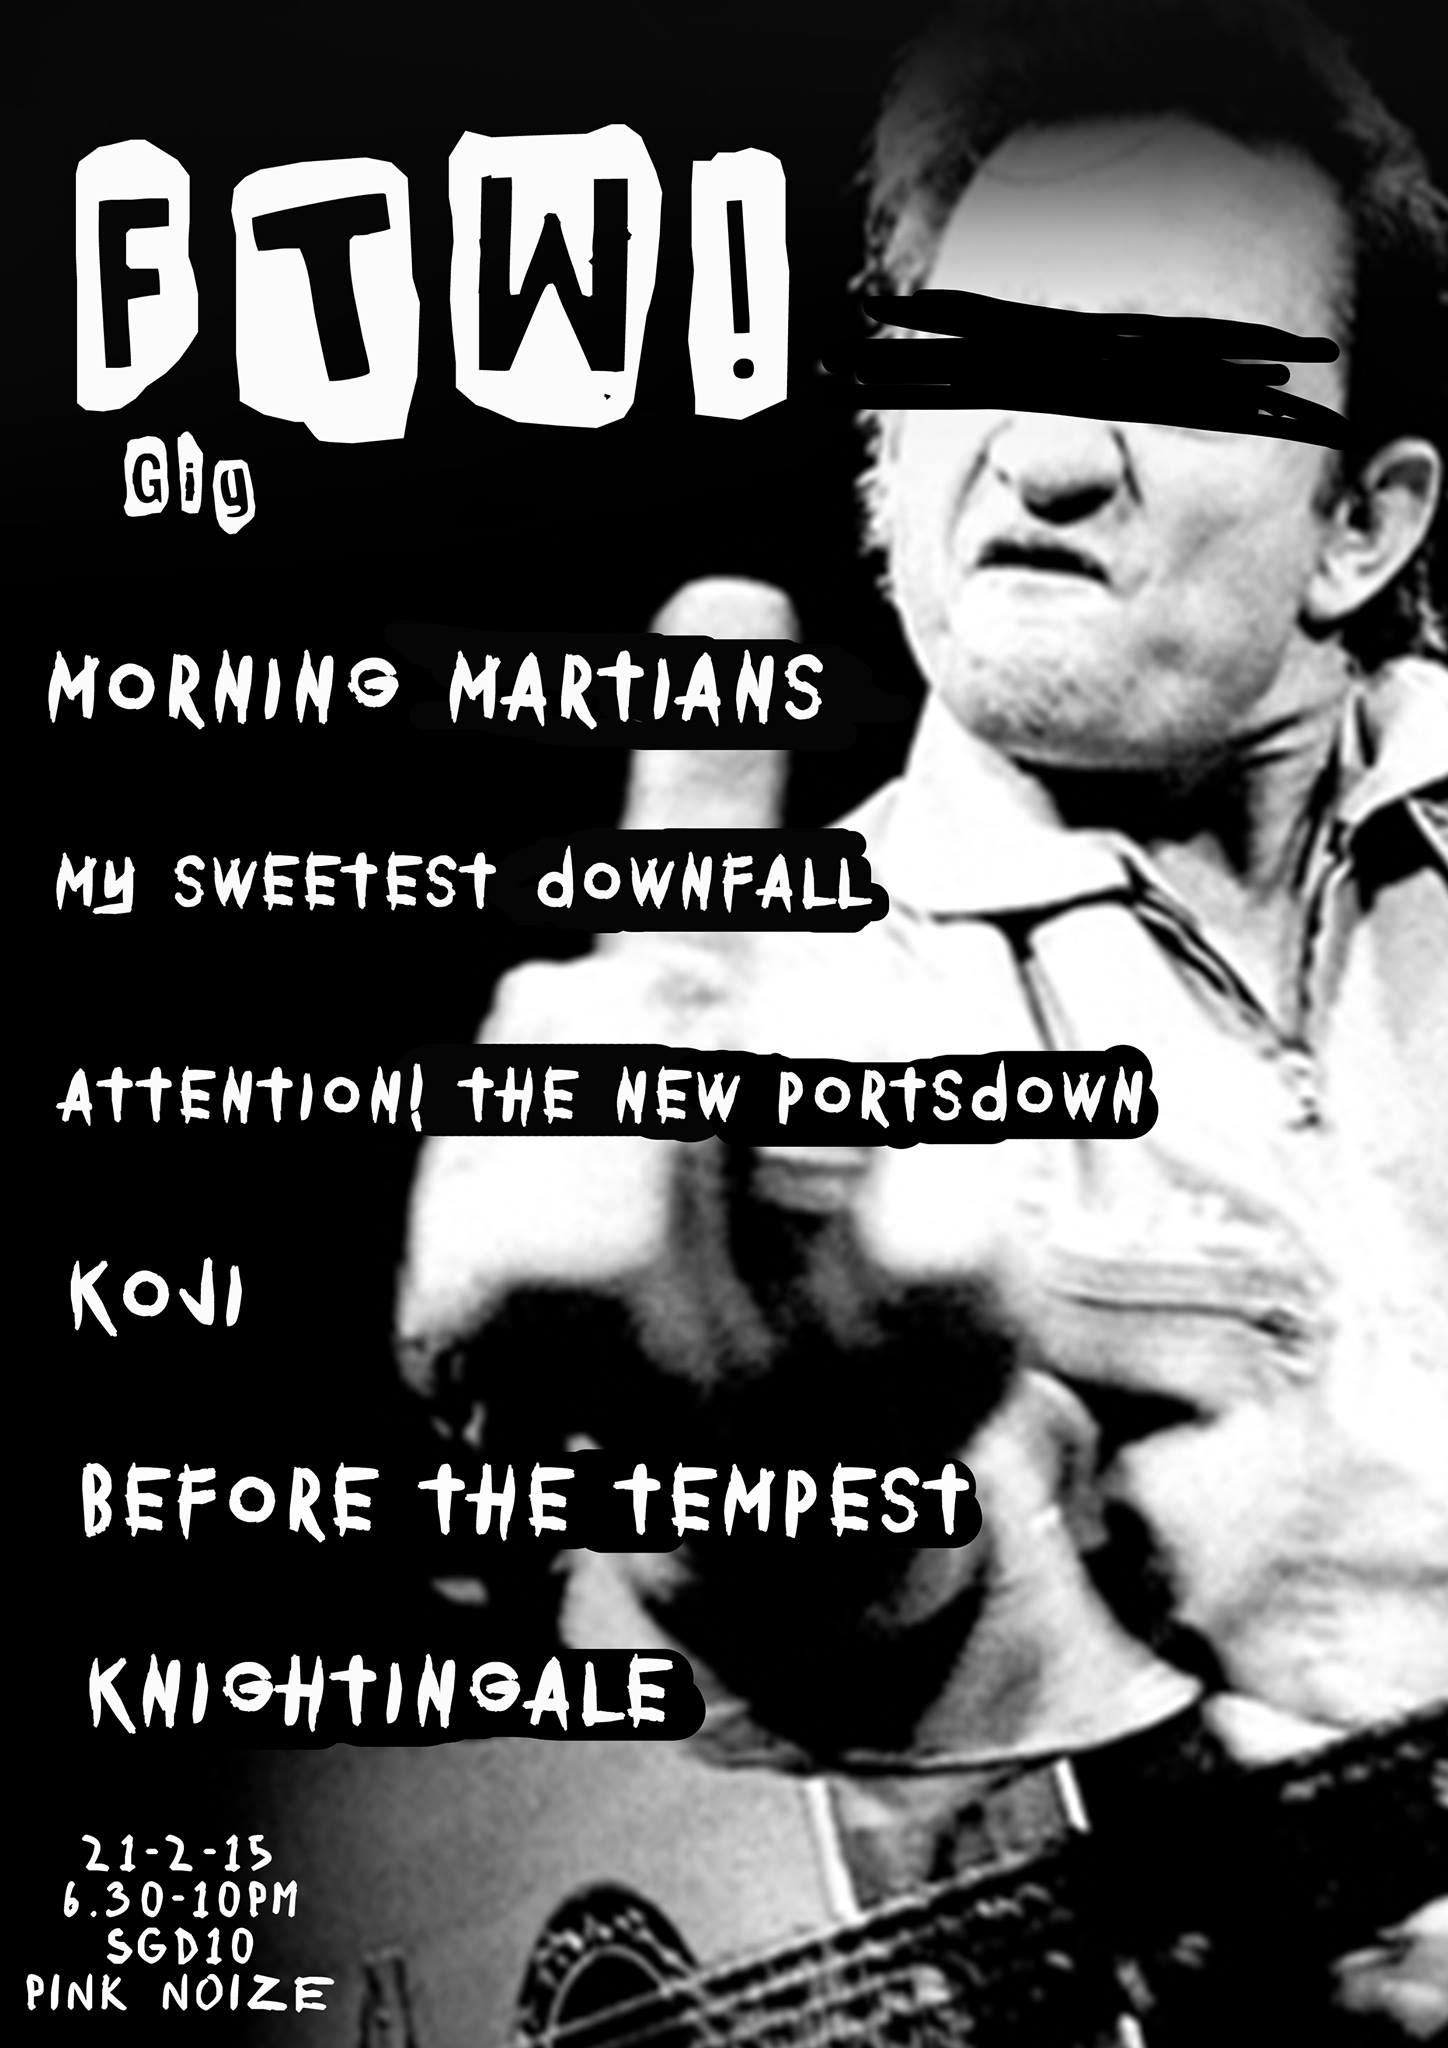 Kids from an unsocial background presents : FTW! Gig